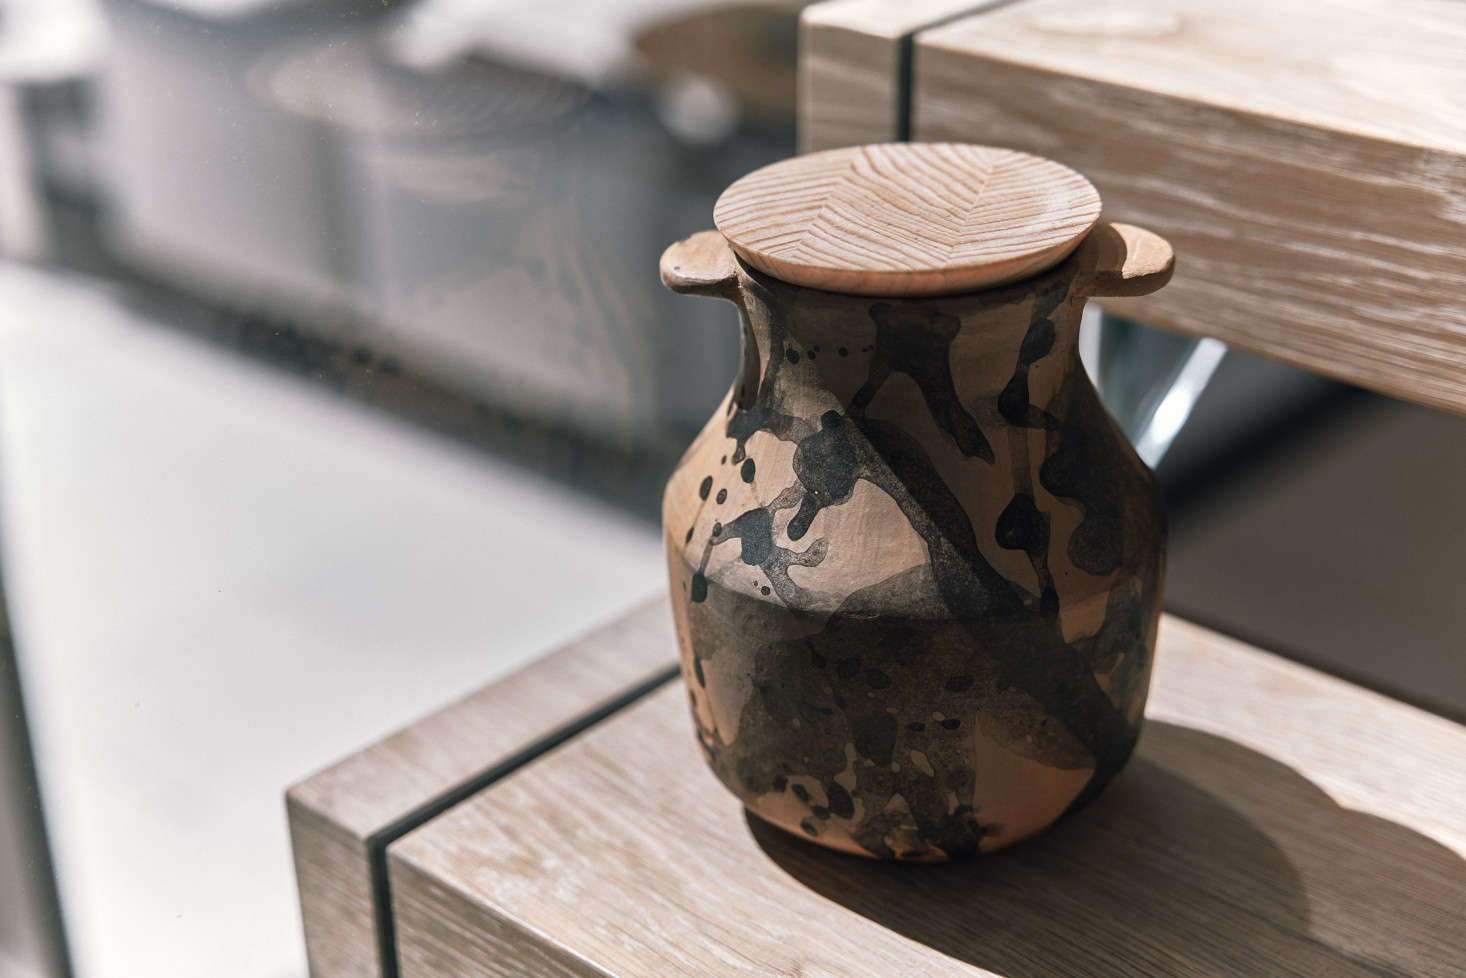 And the Mixteca Jar ($86) is handmade in Tonaltepec, a community in Oaxaca whose ancient ceramic tradition dates back centuries and is one of few to decorate pieces with organic plant pigments. This one's painted with an ink made from prickly pear and oak bark, and it's ideal for holding coffee, flour, salt—or a scattering of dried flowers.